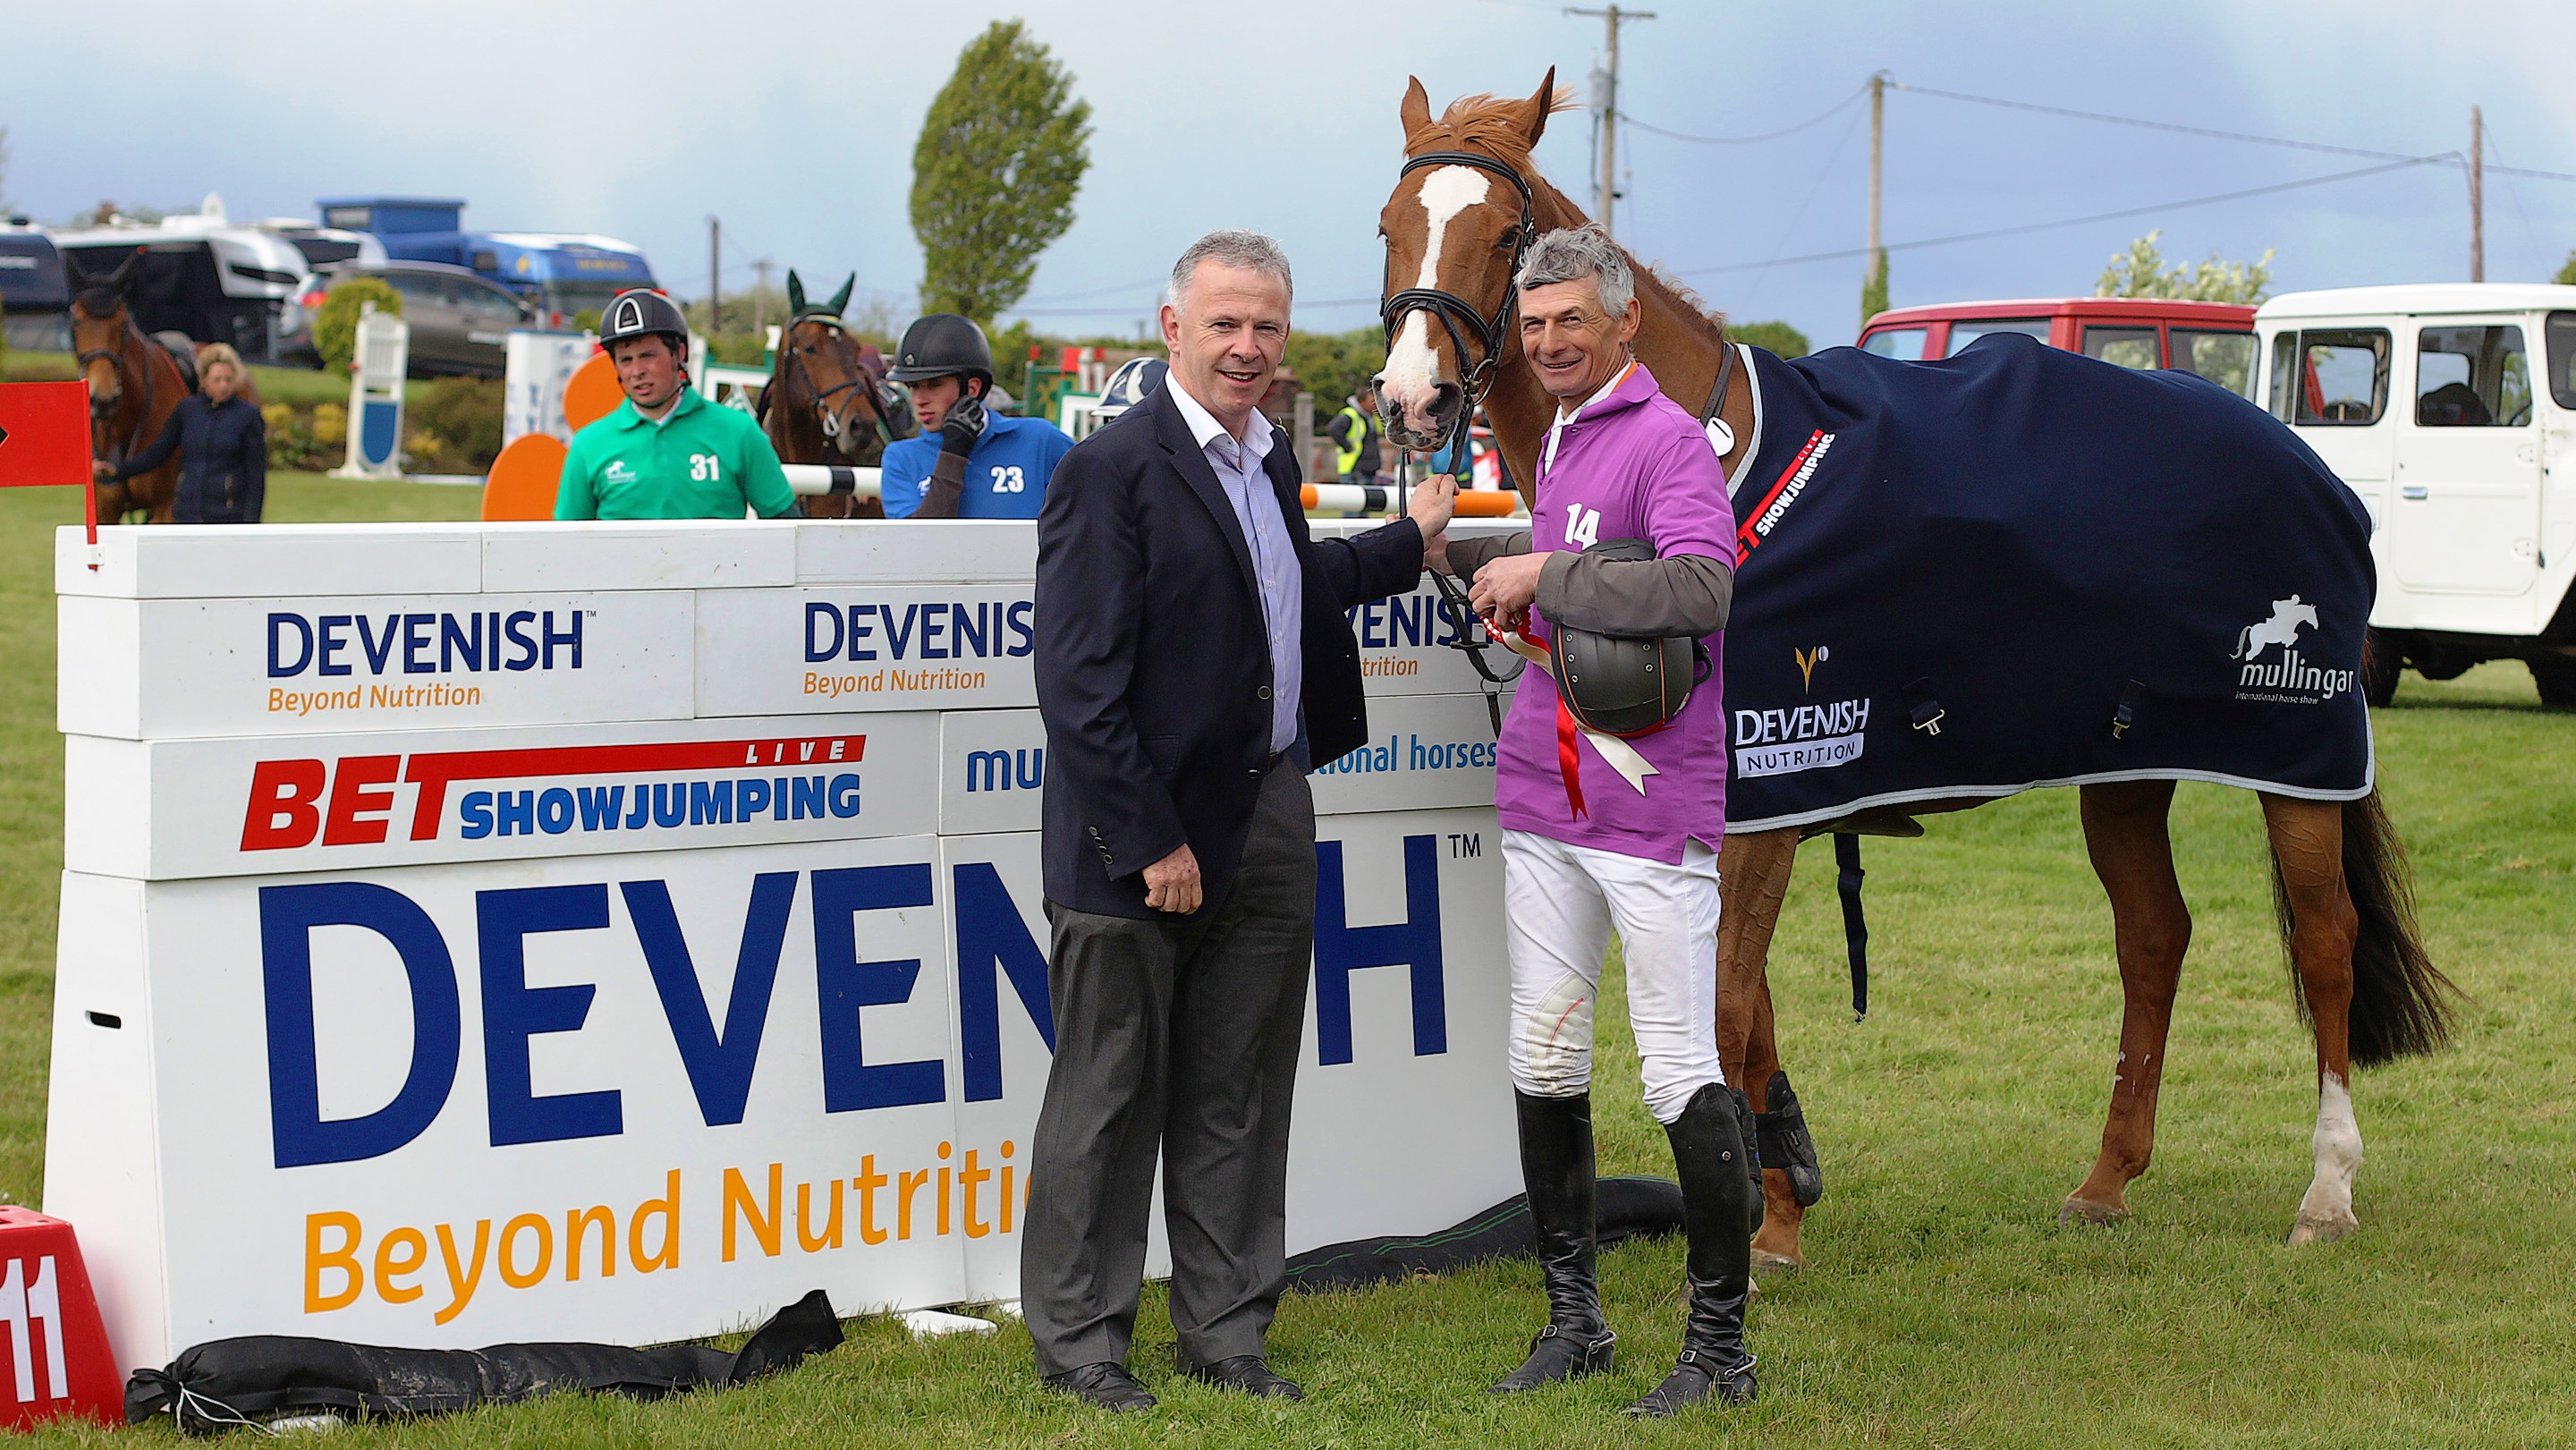 mullingar-international-horse-show-devenish-francis-connors